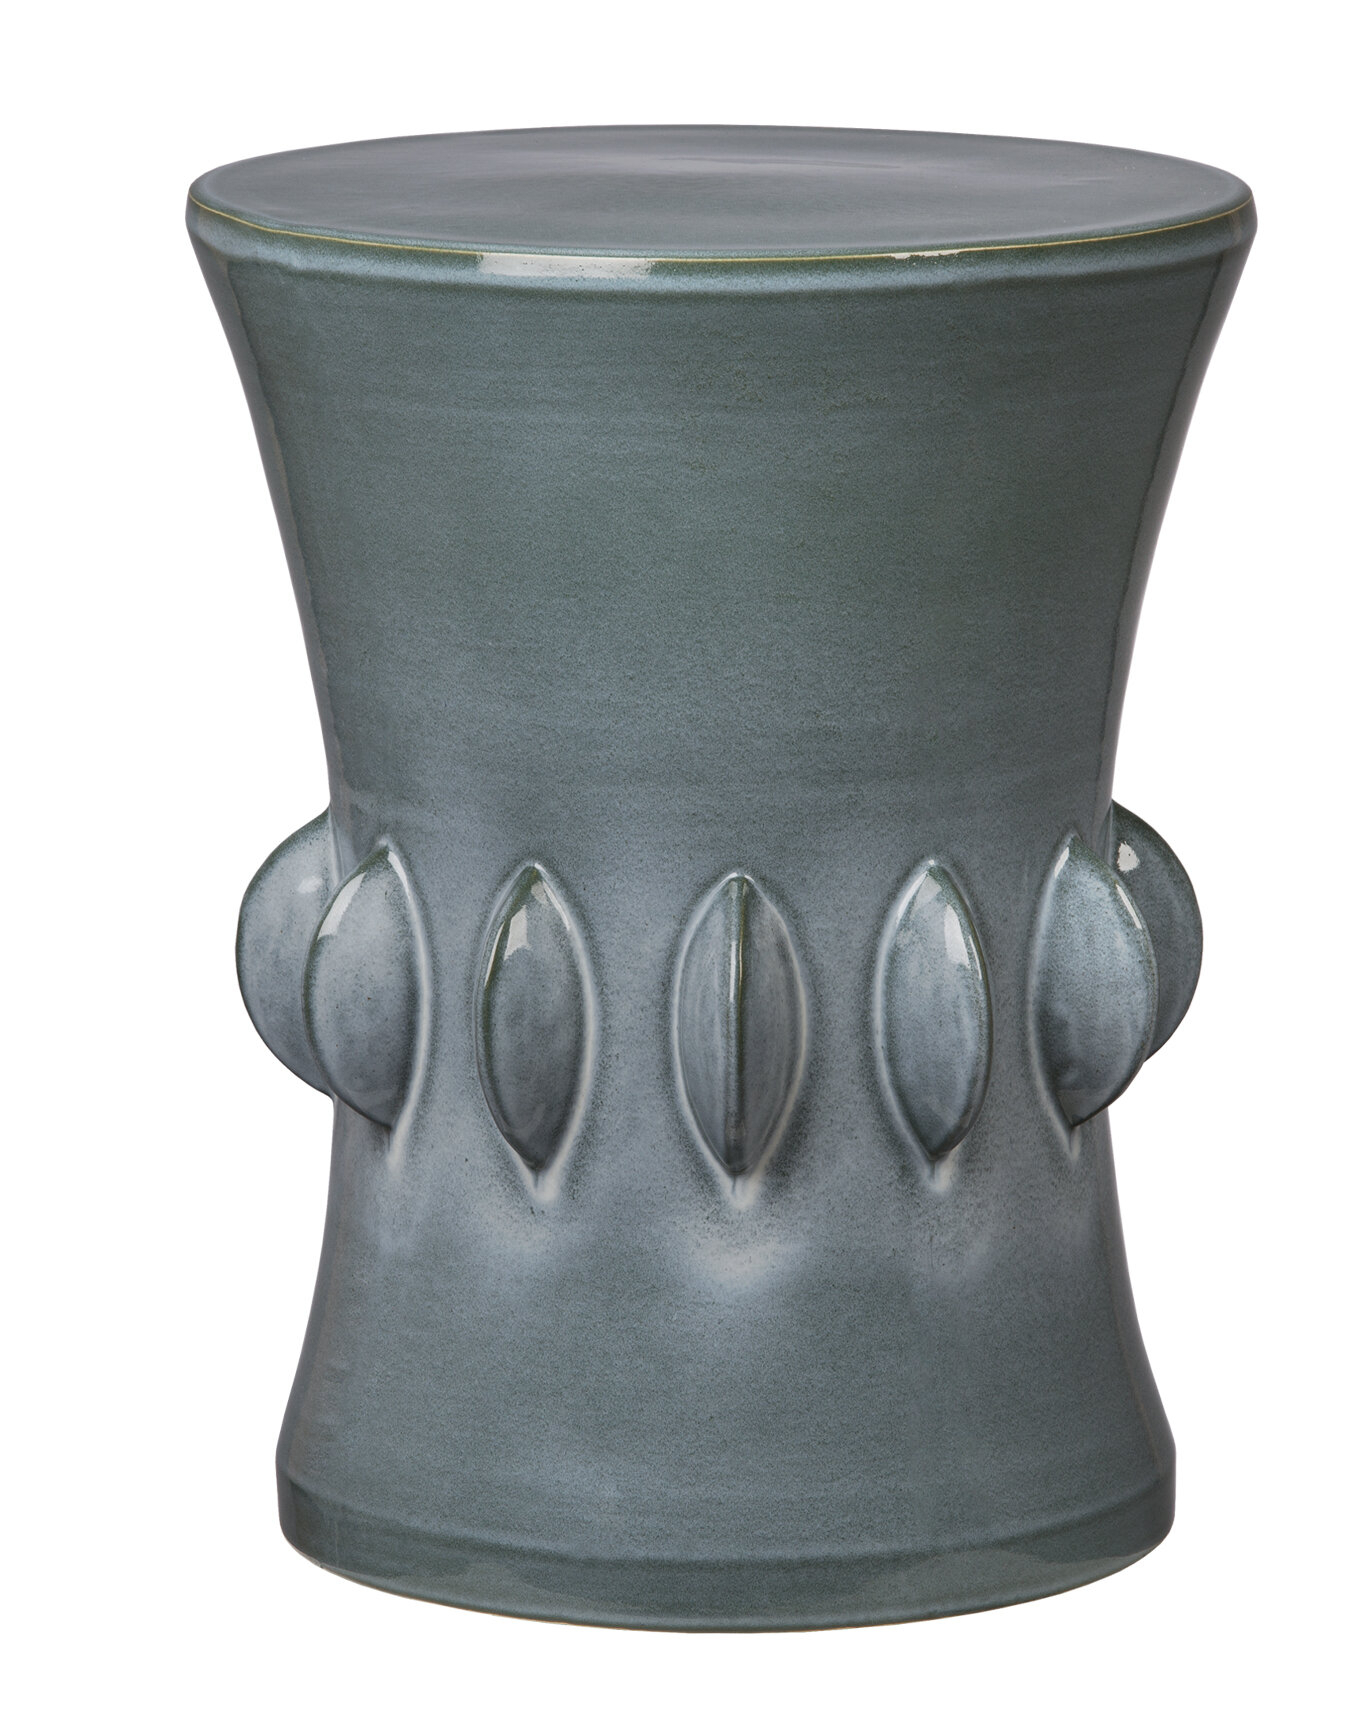 Moonya Ceramic Garden Stool Within Karlov Ceramic Garden Stools (View 23 of 25)